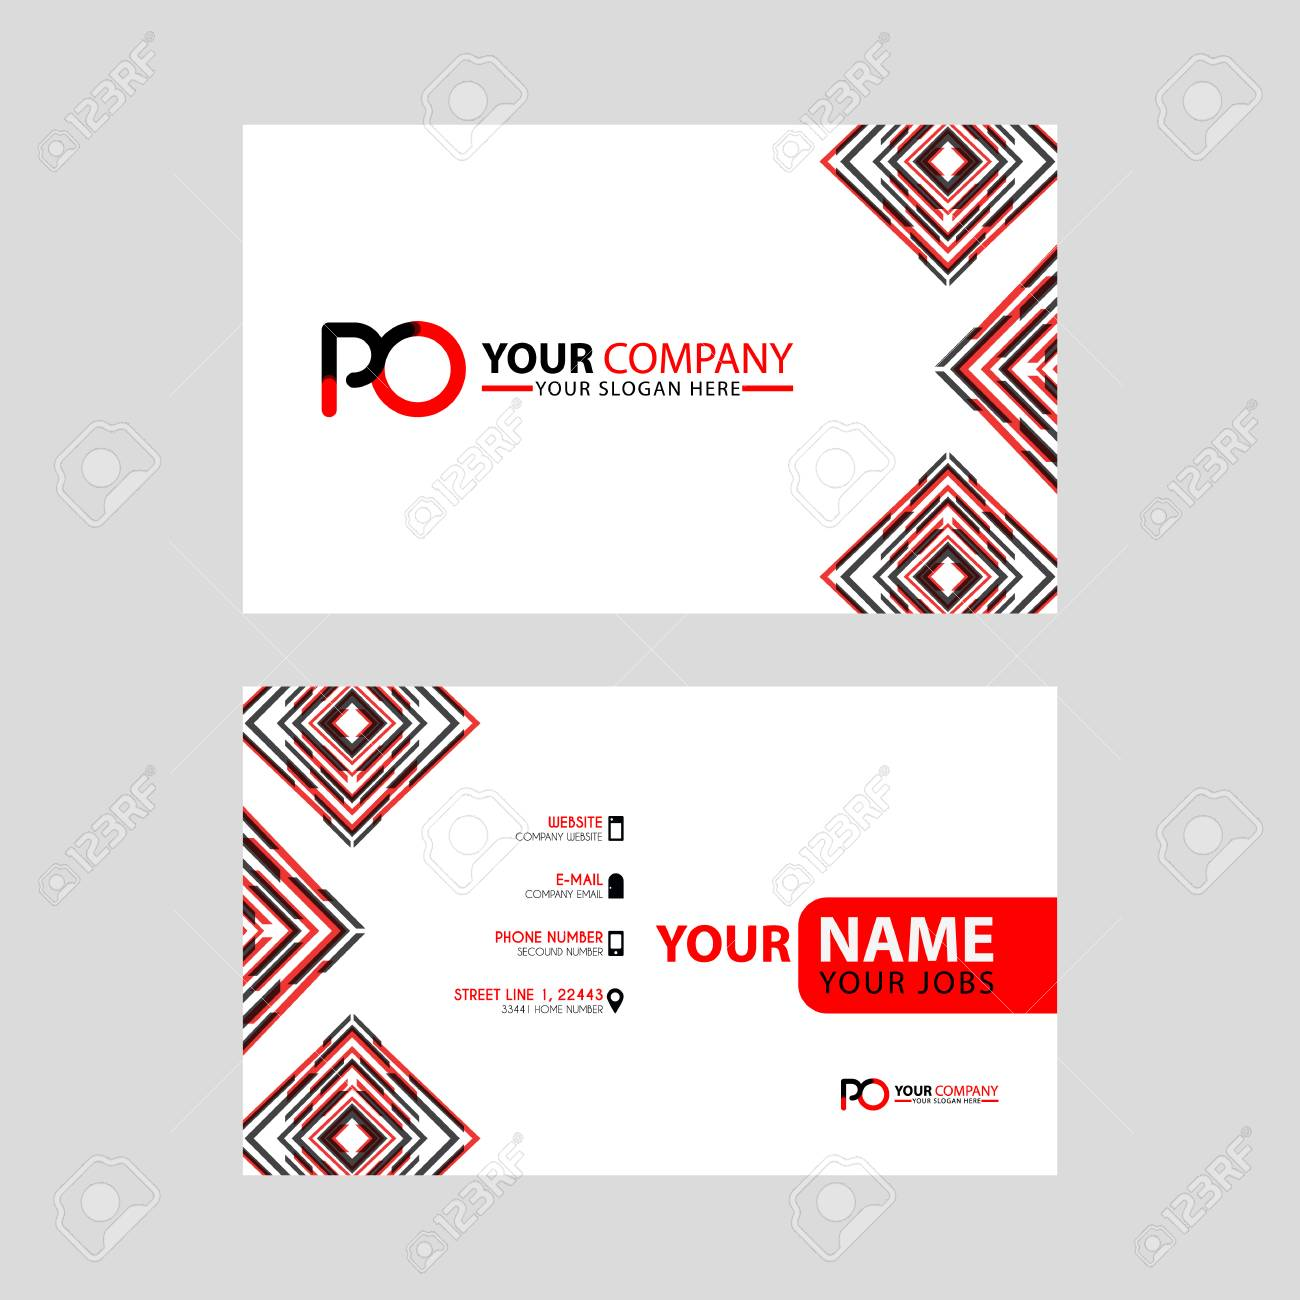 Modern Business Card Templates With Po Logo Letter And Horizontal